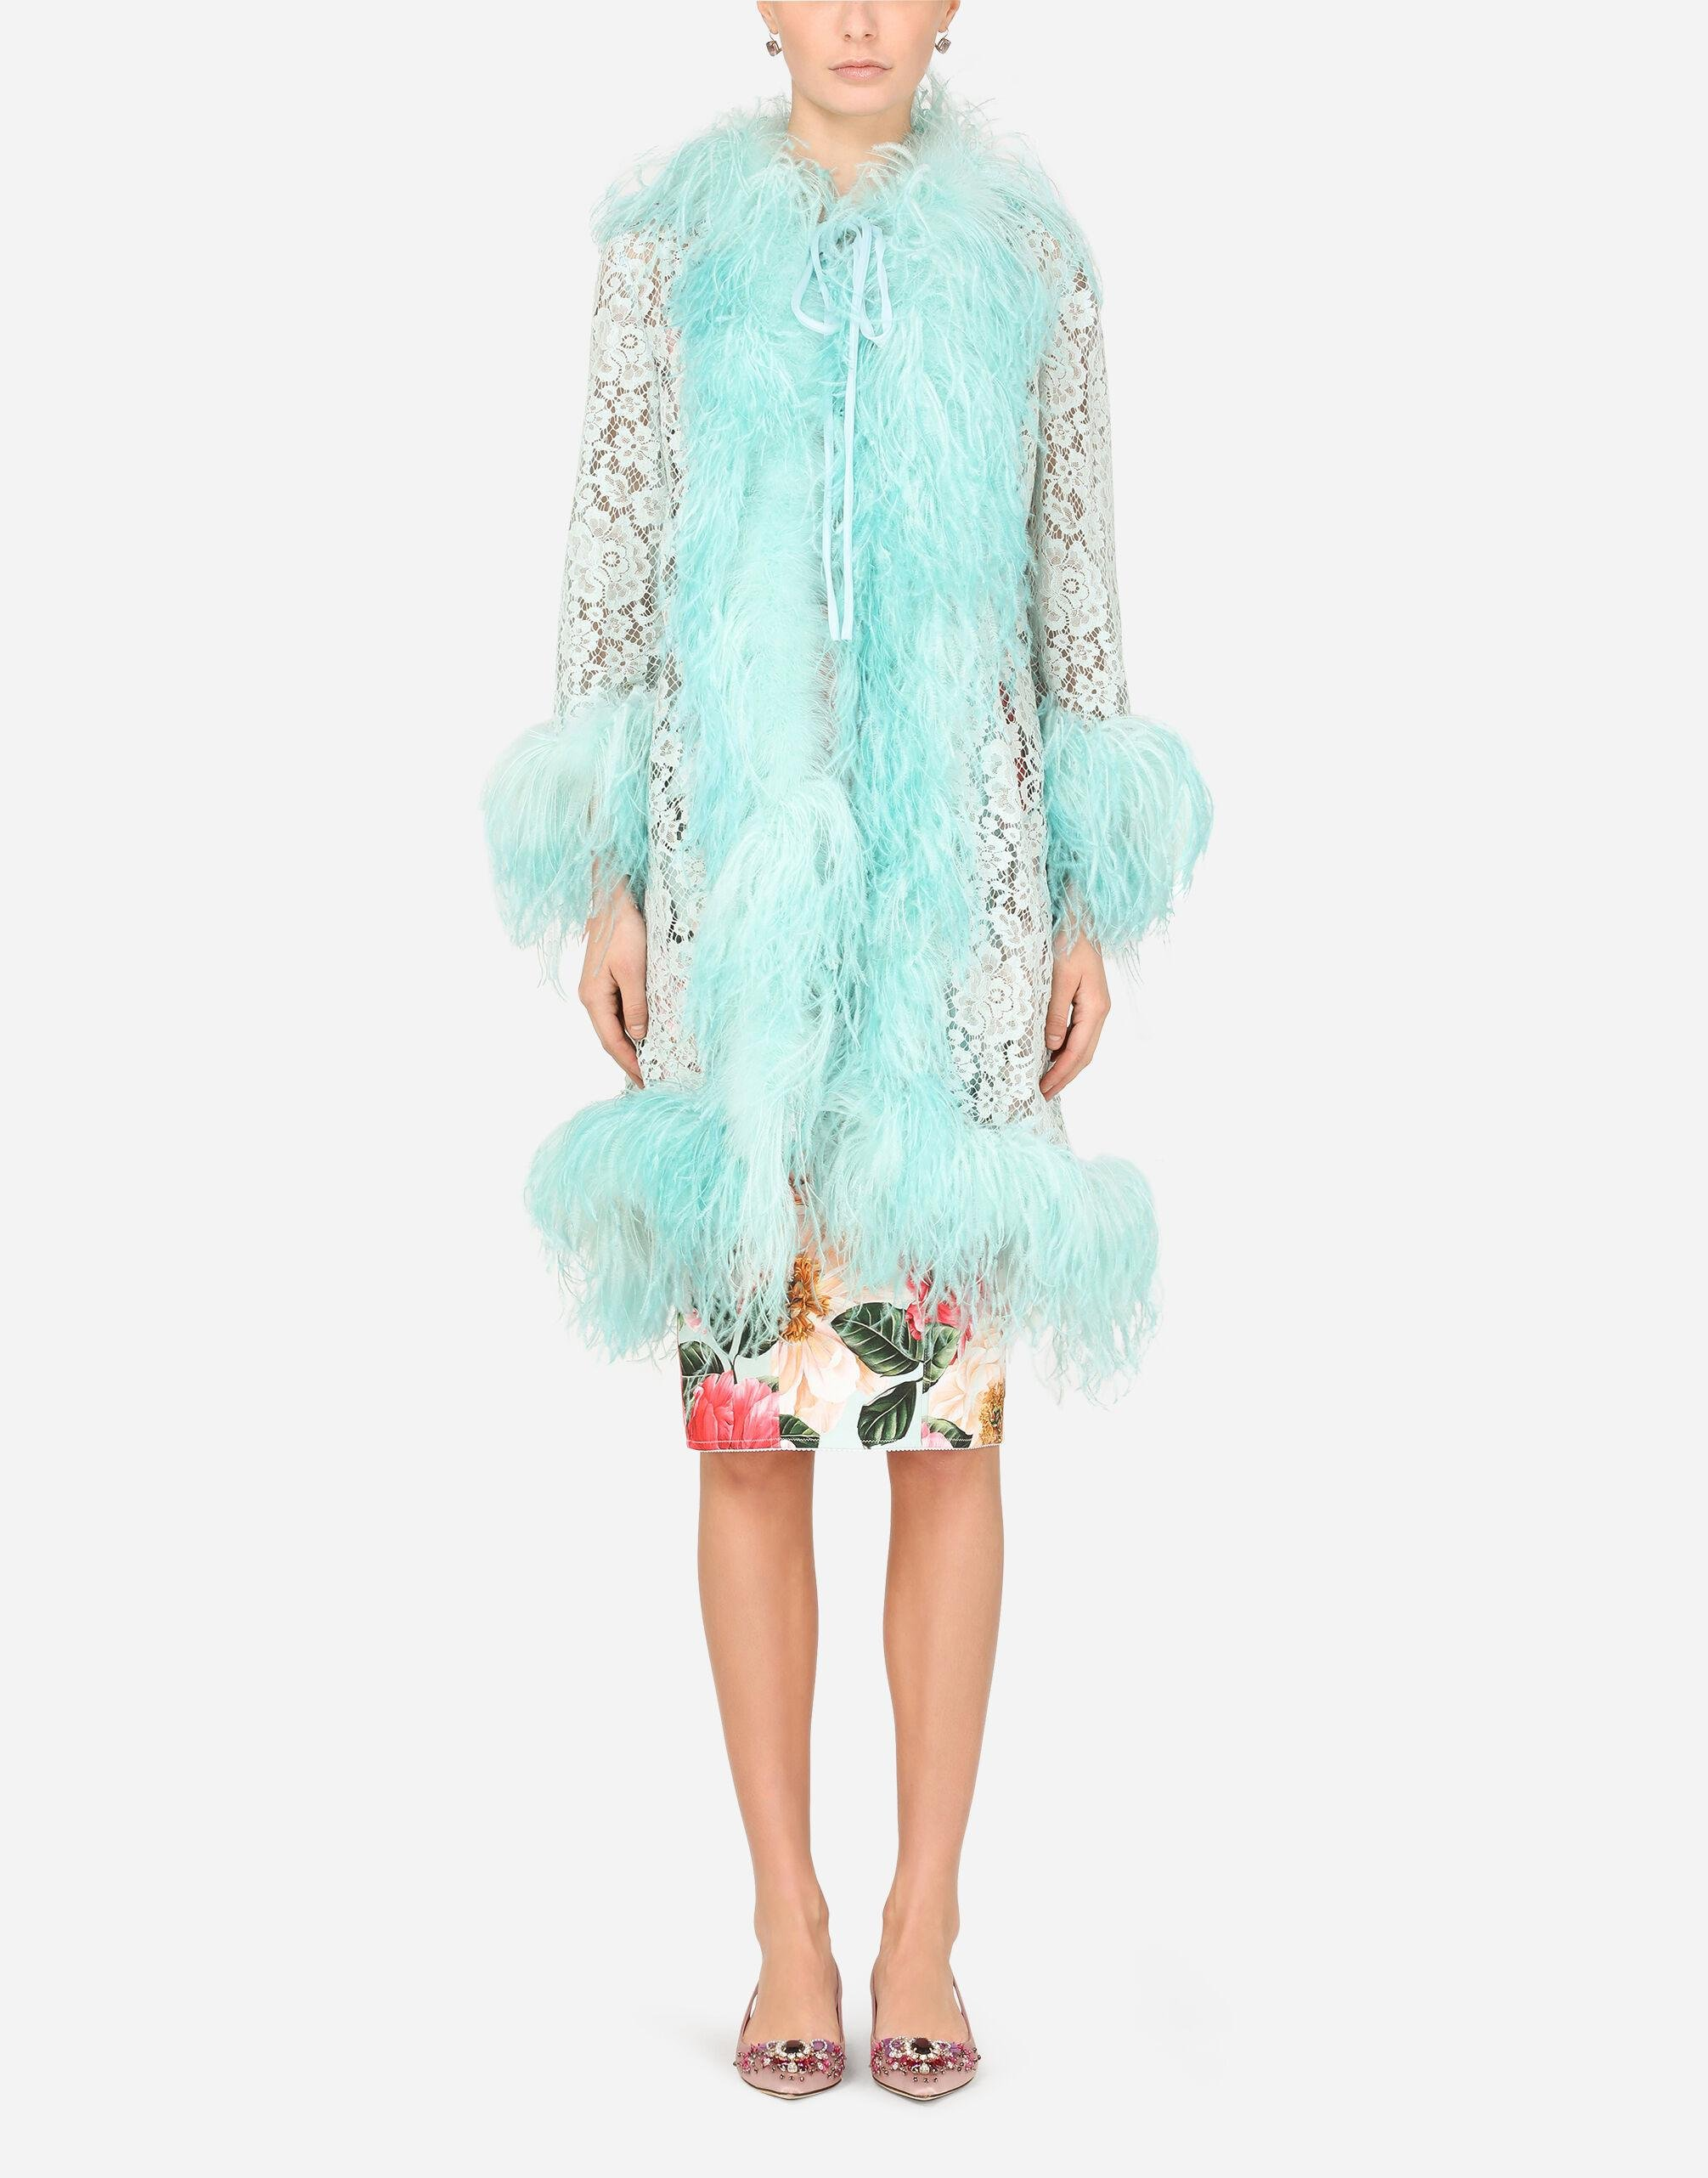 Lace coat with marabou trim